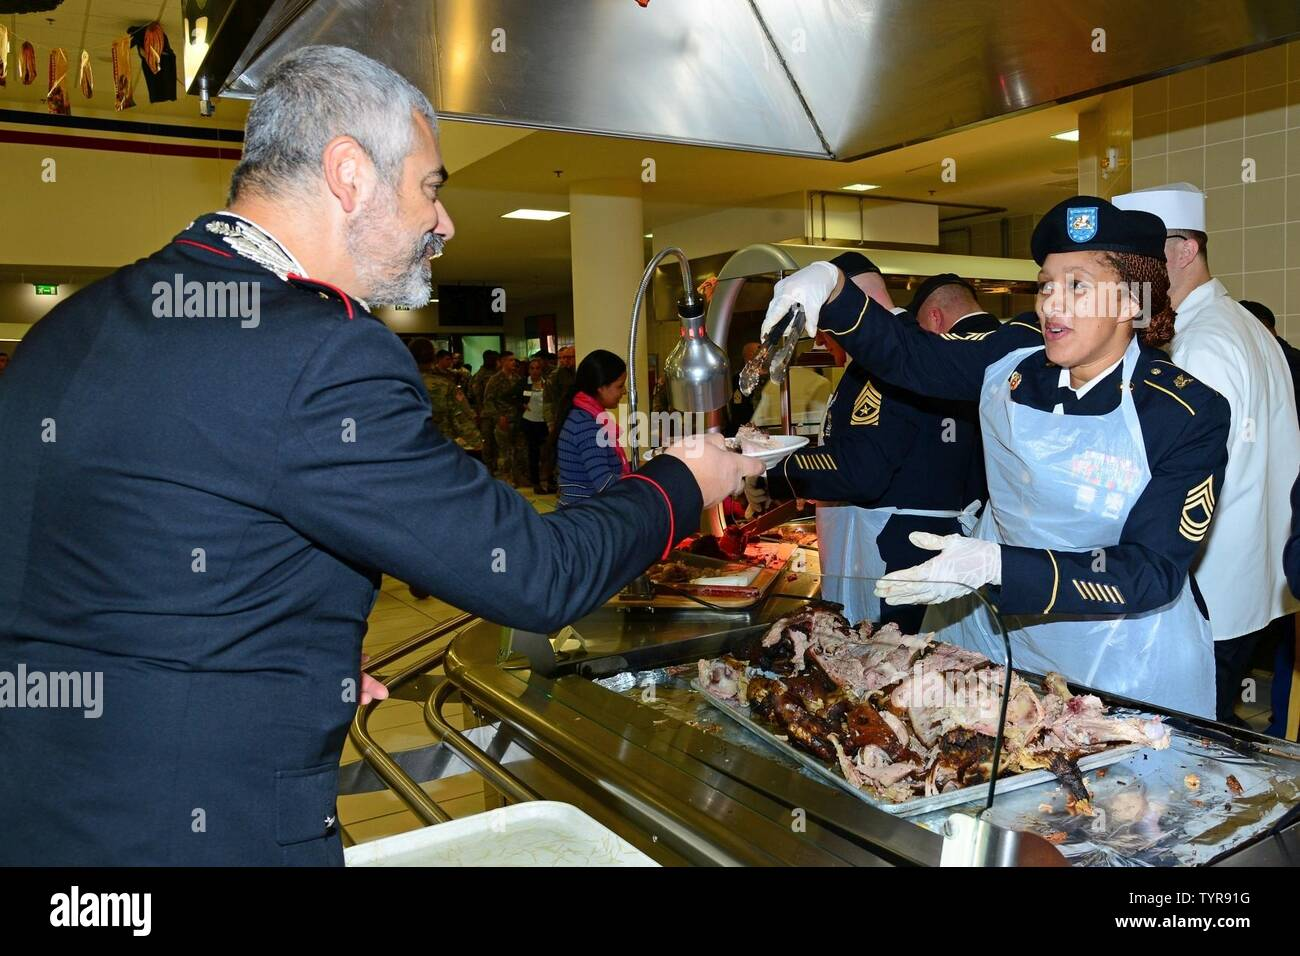 U.S. Army Master Sgt. Nicola M. Felder, assigned to U.S. Army Africa, serves lunch to Capt. Francesco Provvidenza, company commander Carabinieri Southern European Task Force, during the Thanksgiving lunch celebration at Caserma Del Din in Vicenza, Italy, Nov. 22, 2016. - Stock Image